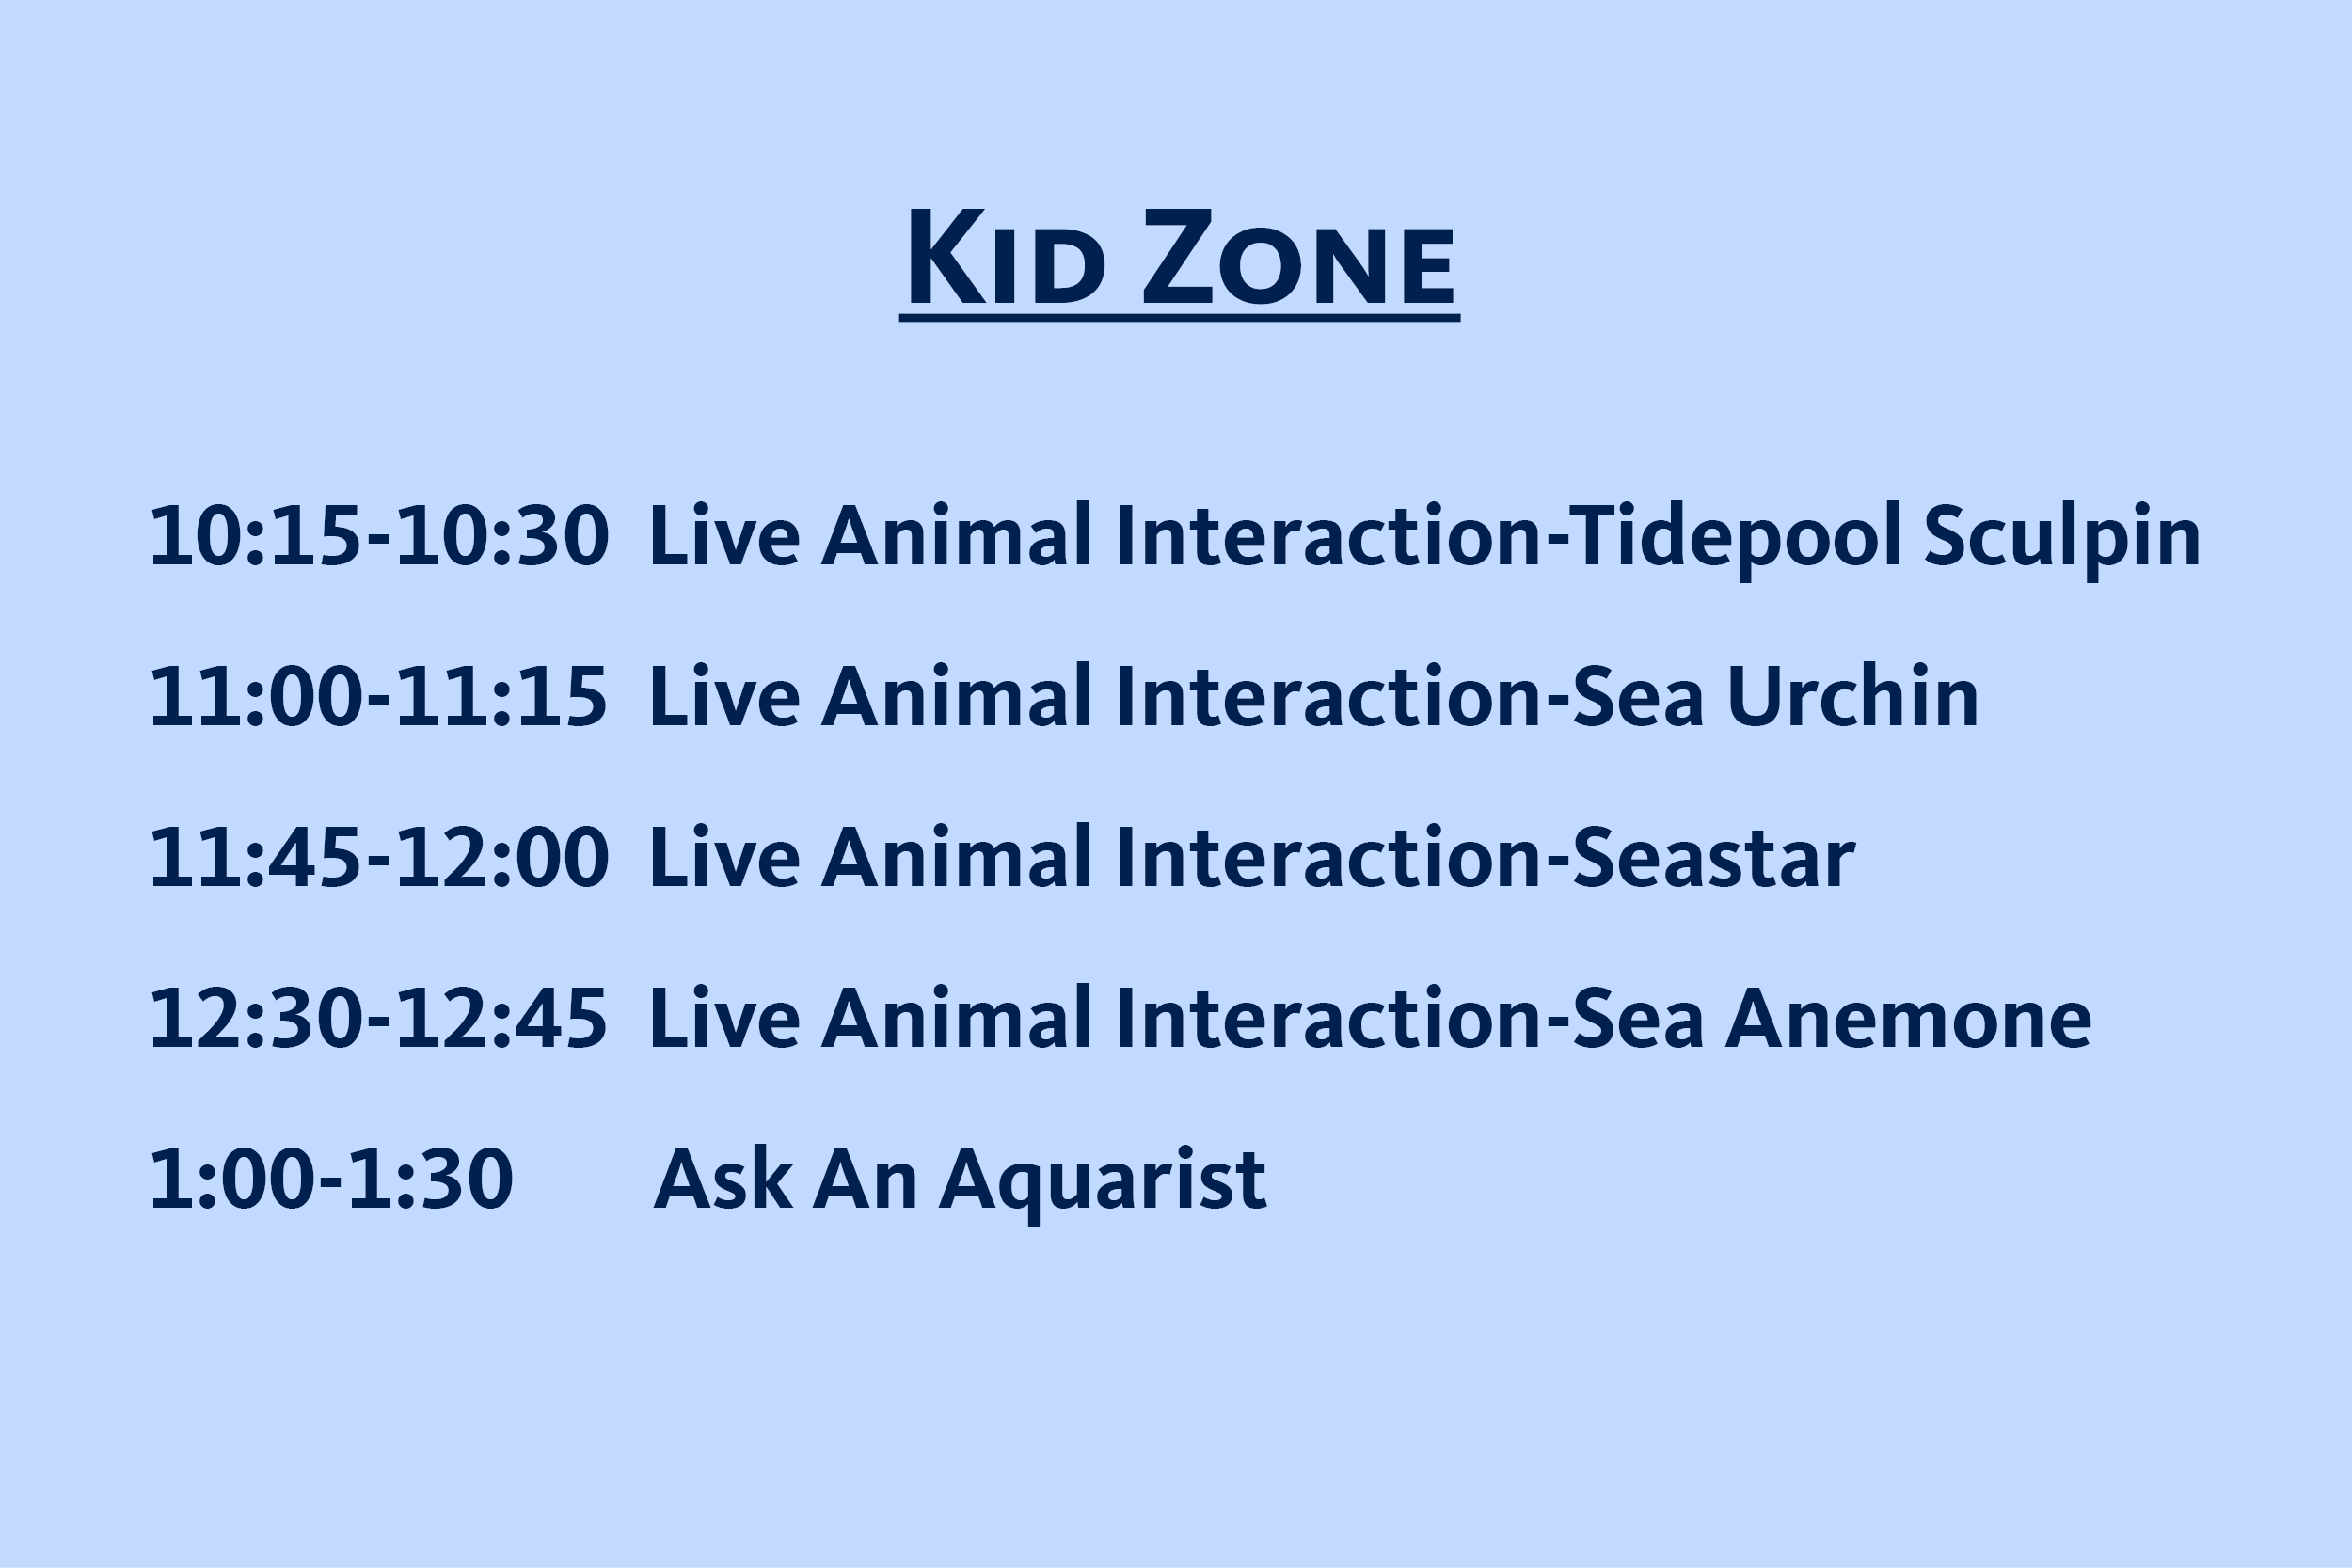 Schedule for the kids zone live events at Marine Science Day